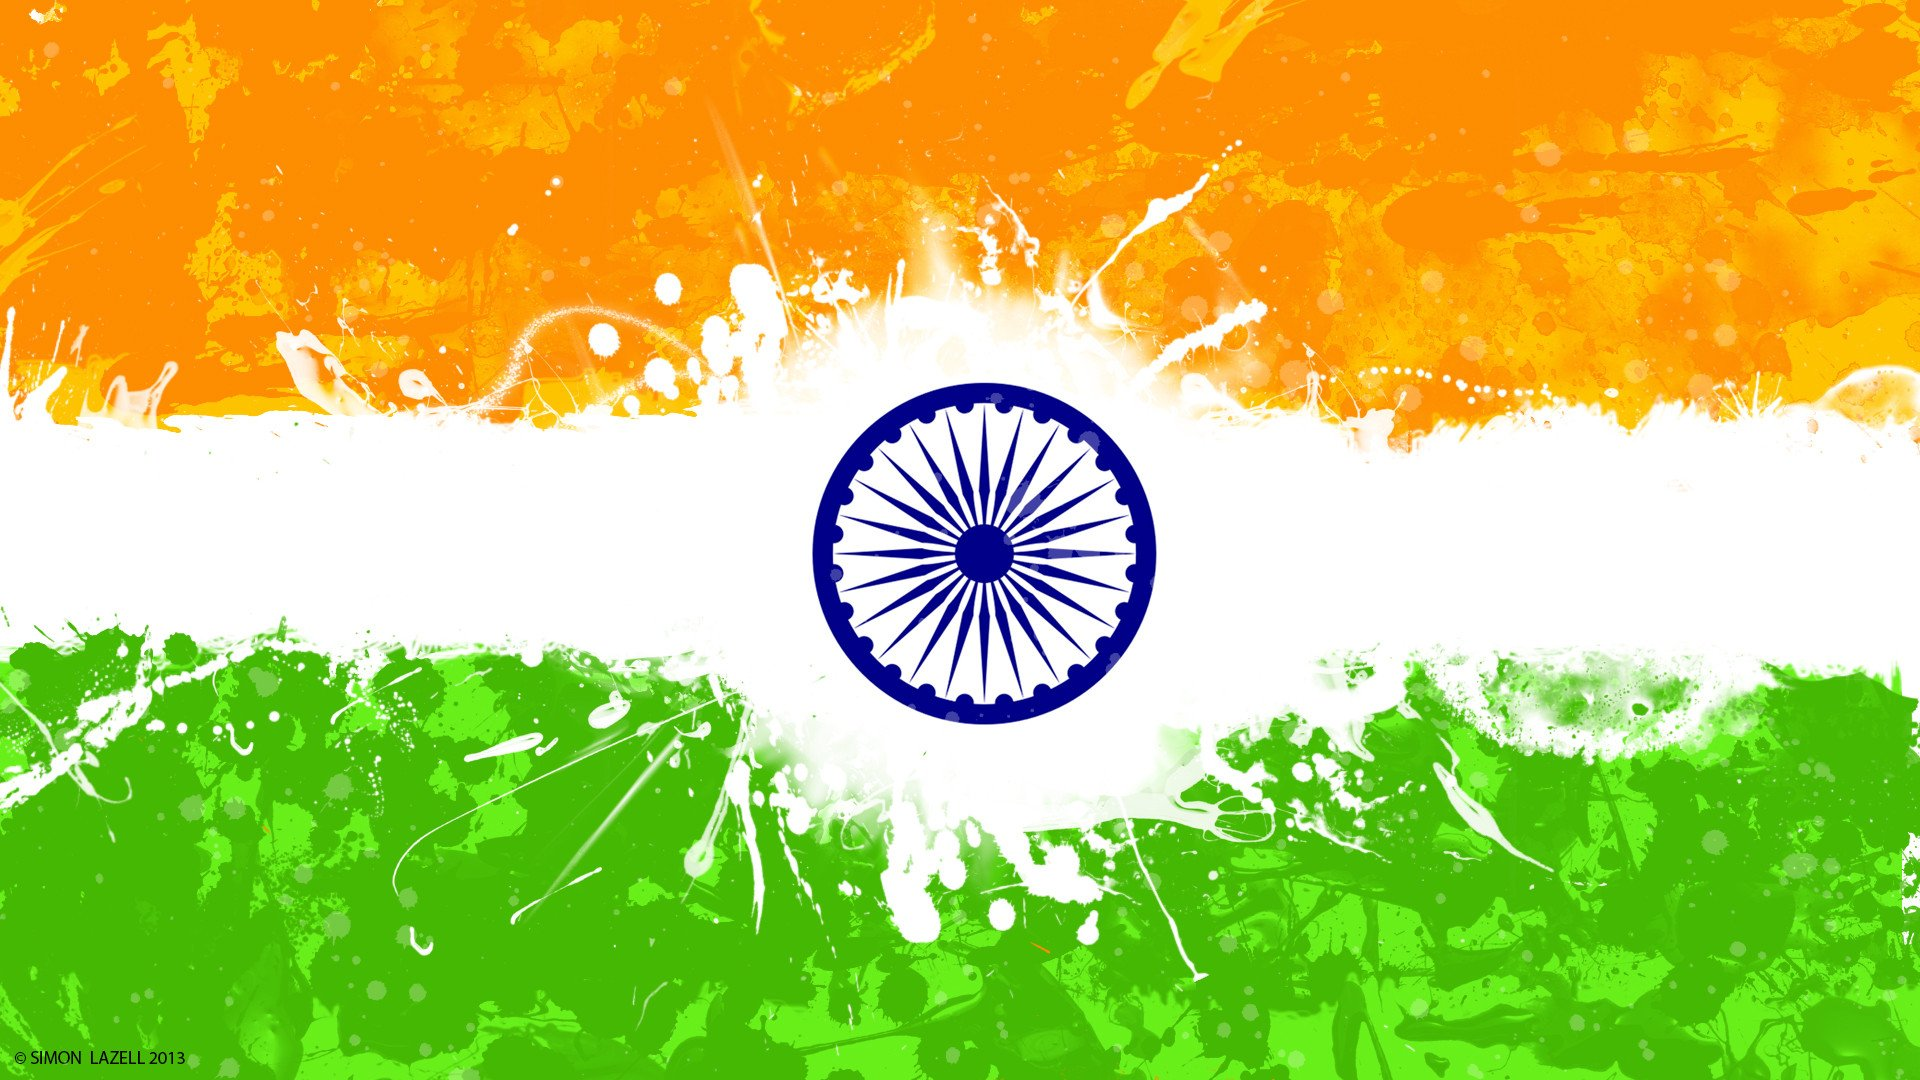 Indian Flag Wallpapers   HD Images Download   PolesMag 1920x1080